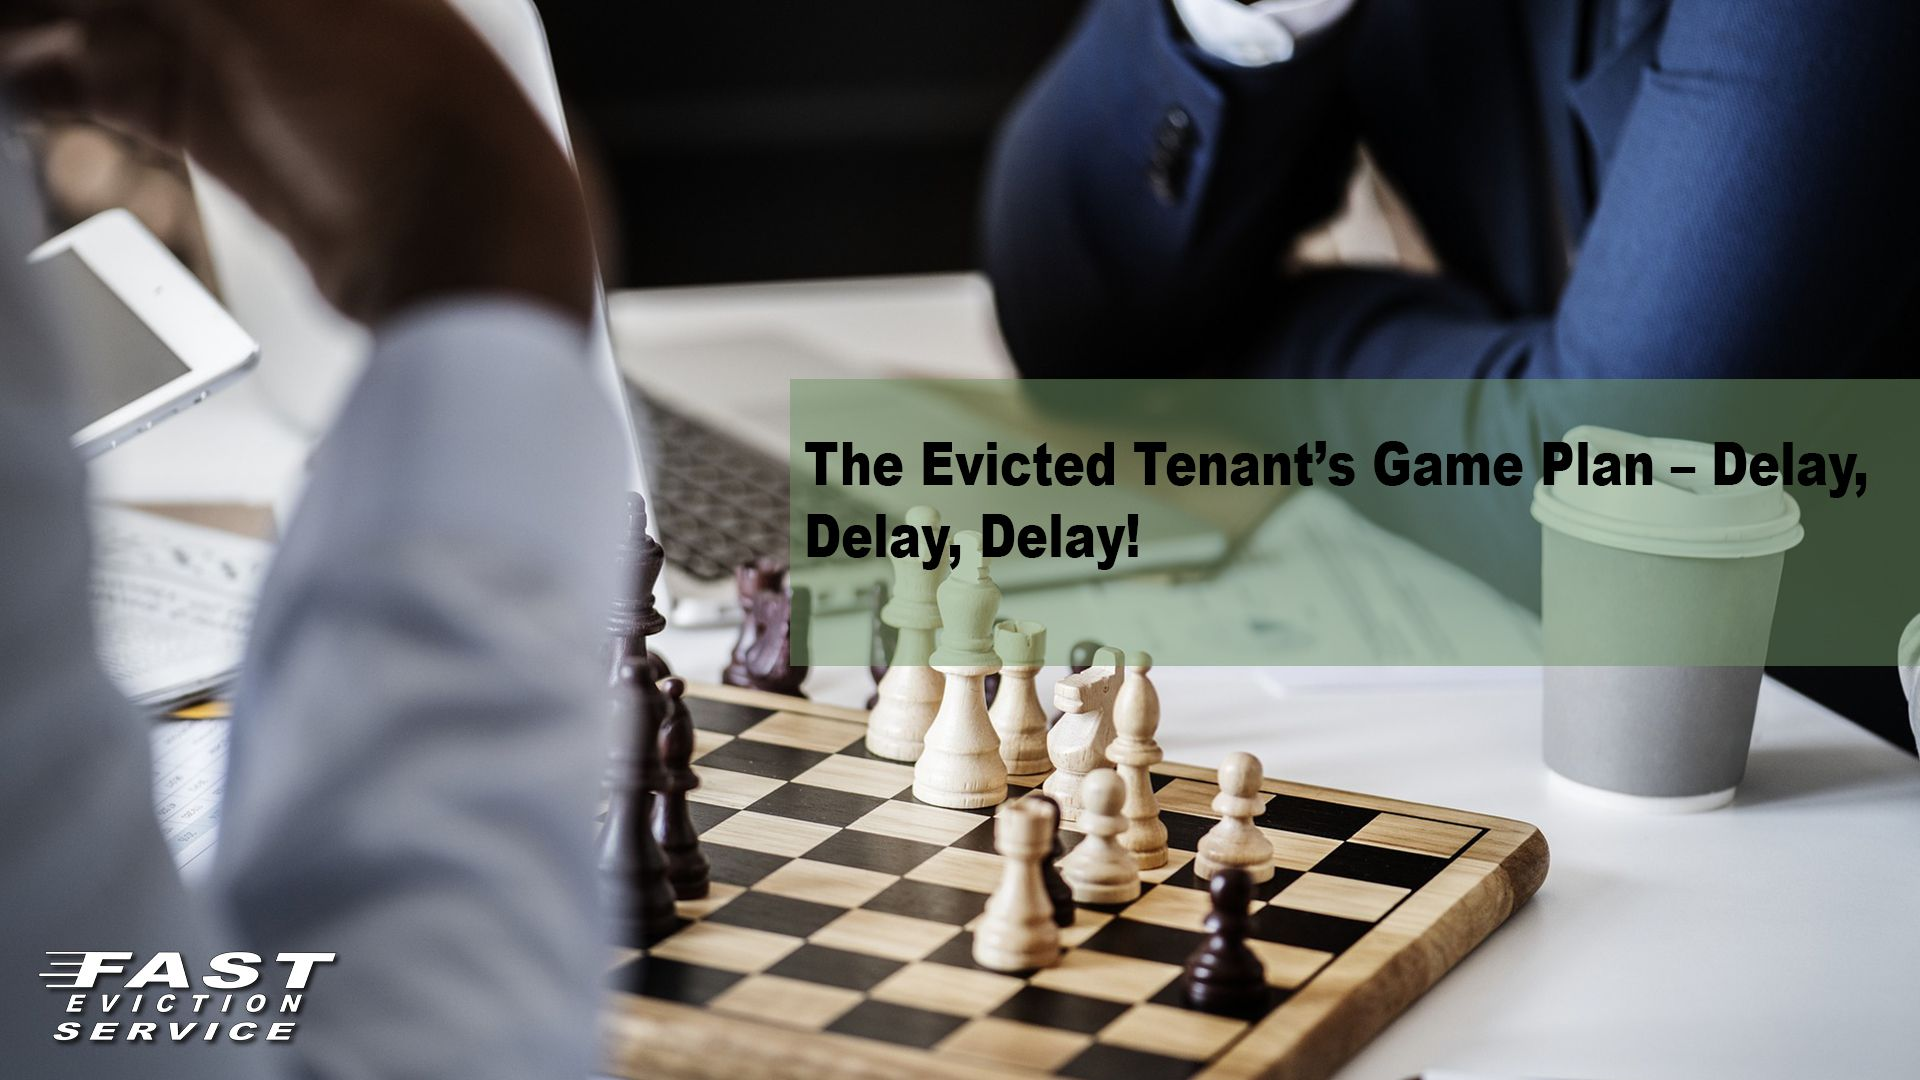 The Evicted Tenant's Game Plan - Delay, Delay, Delay! - Fast Evict